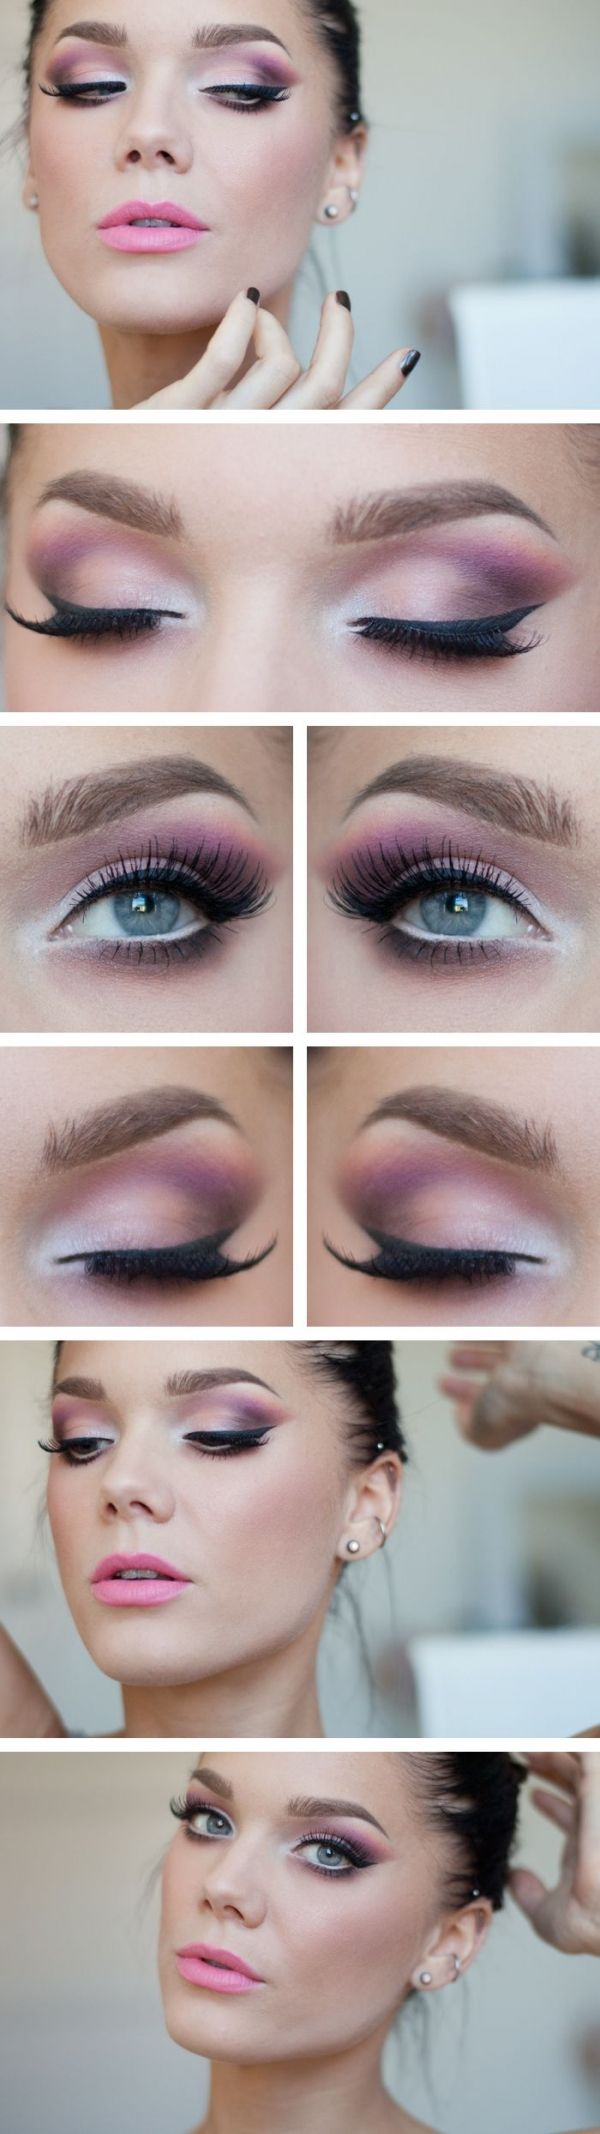 Achieve these looks with Mary Kay! Ask me how! Marykay.com/lisahaggerty